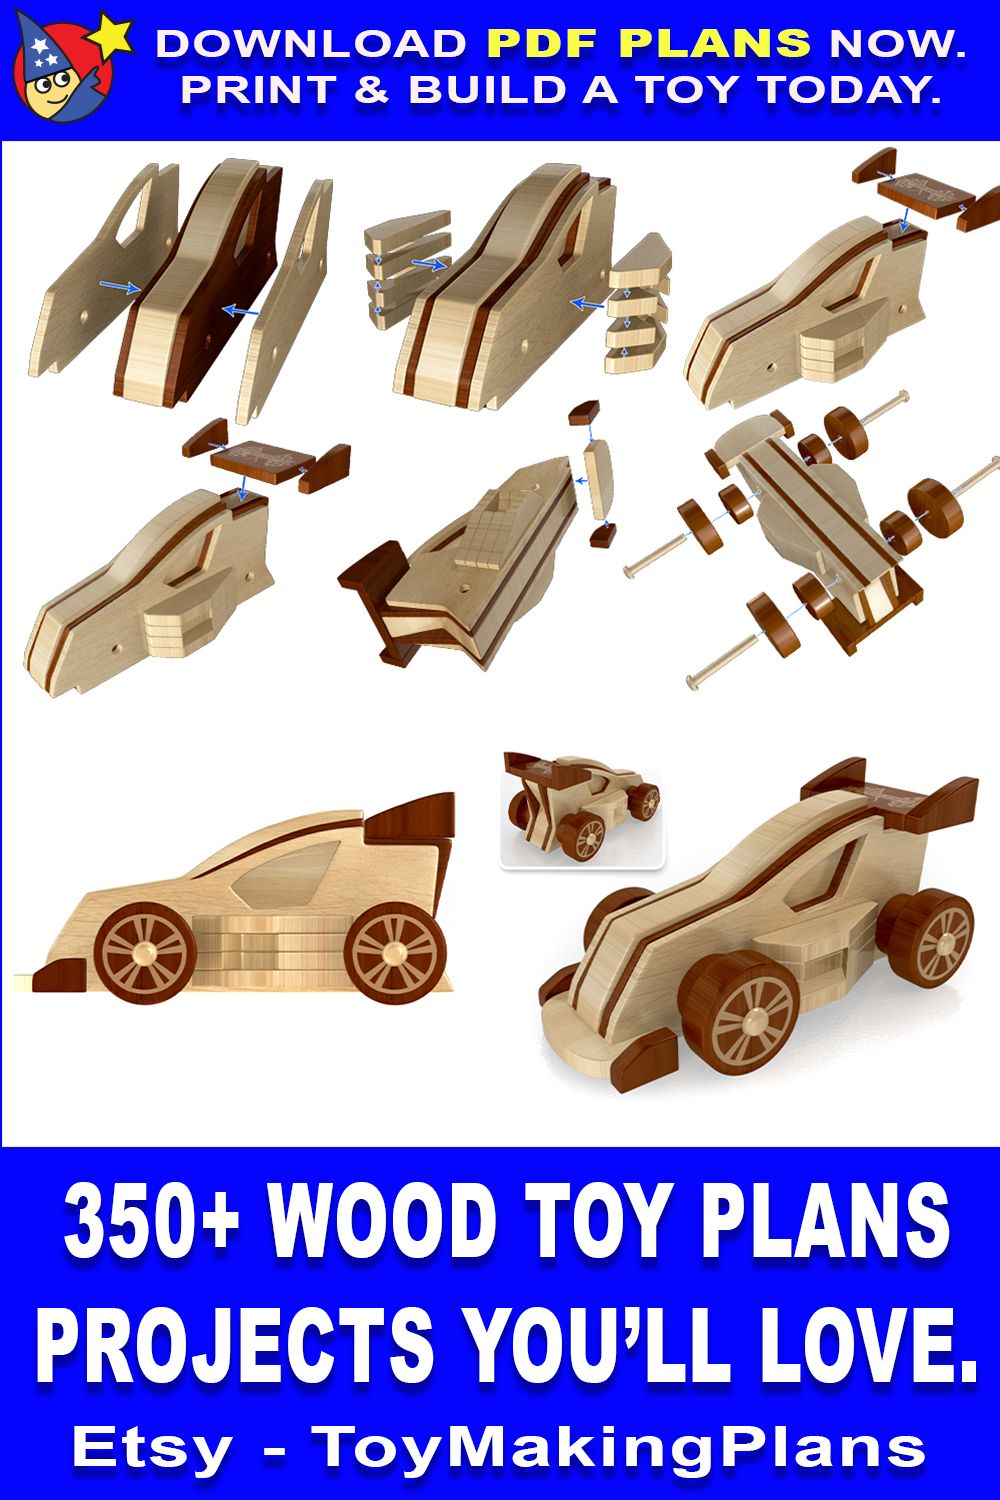 Scroll Saw Magic Boquiren Racing Gt Pro Pdf Download Etsy In 2021 Wood Toys Plans Scroll Saw How To Plan